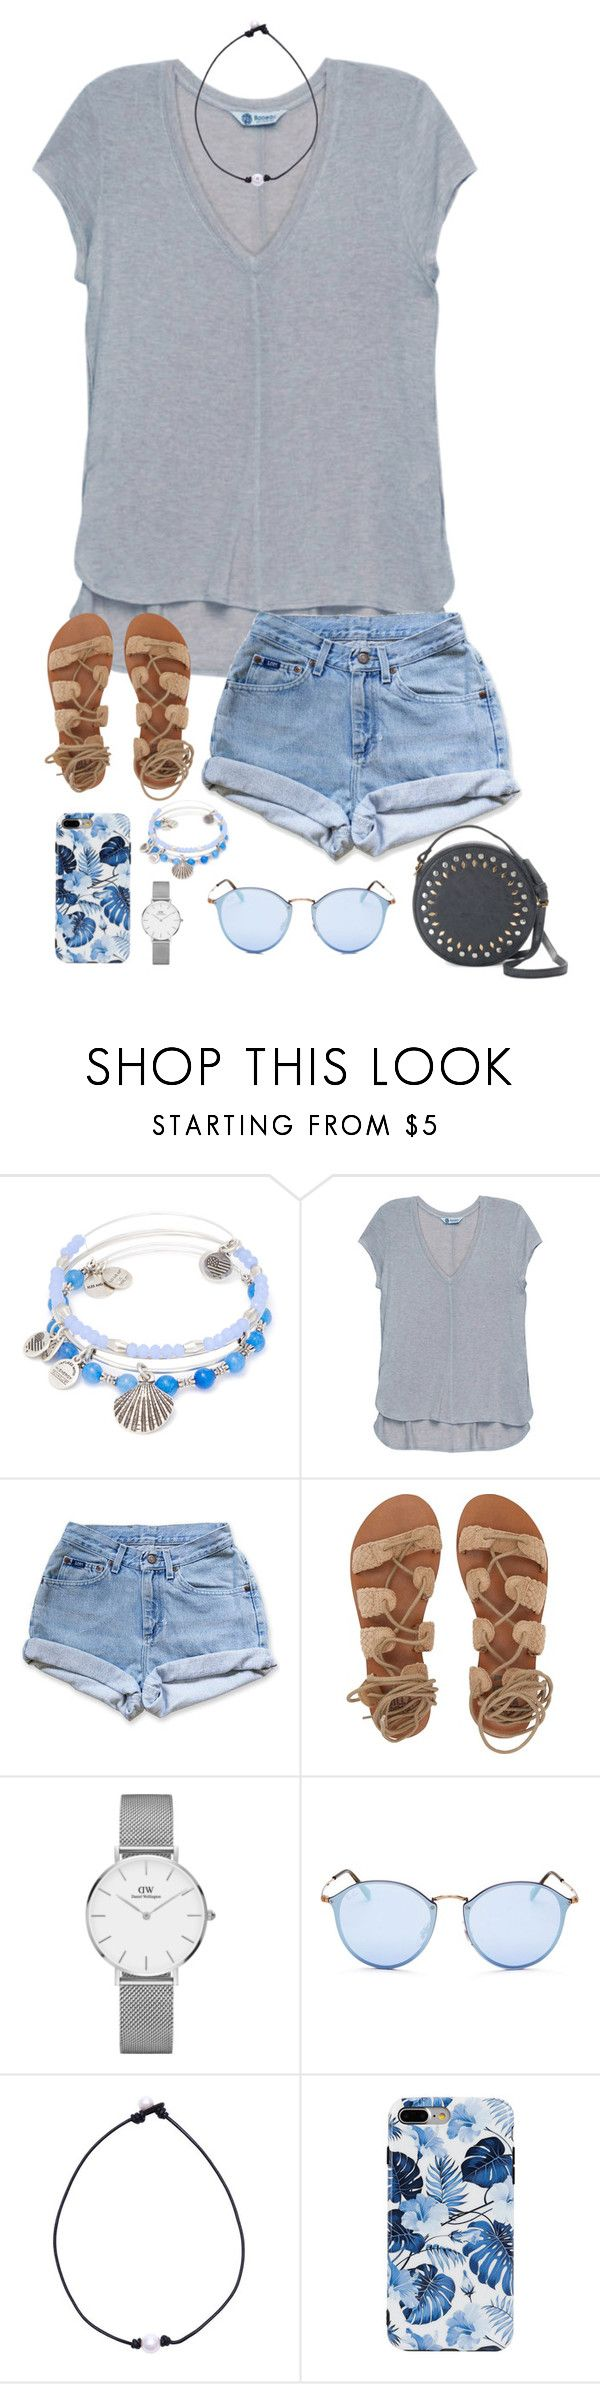 Untitled #229 by borinkenm on Polyvore featuring Bobeau, Levi's, Billabong, Olivia Miller, Alex and Ani, Daniel Wellington and Ray-Ban